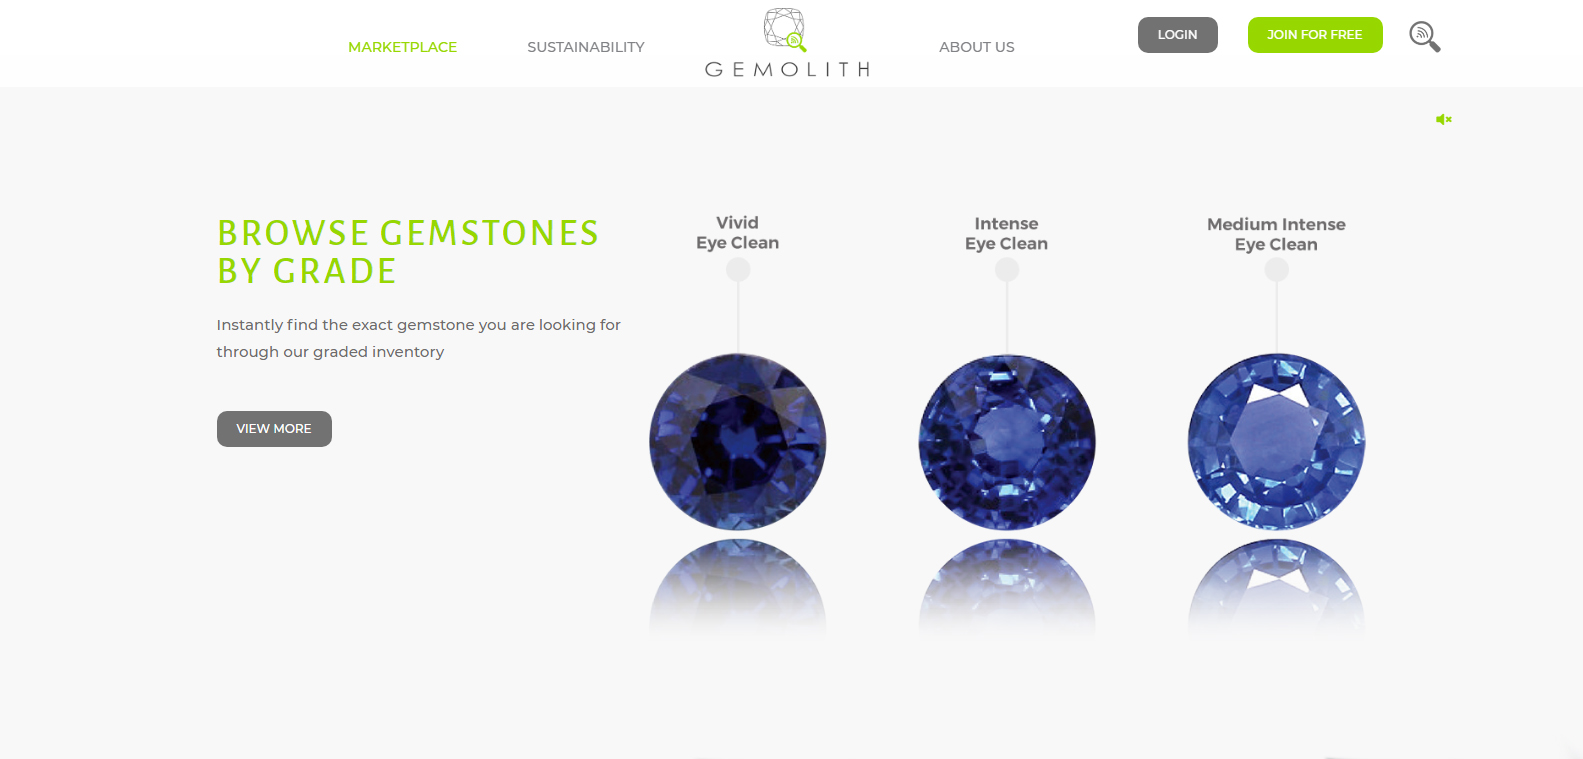 Now, if you have not visited Gemolith.com yet, do take a look at the selection of stones on the website